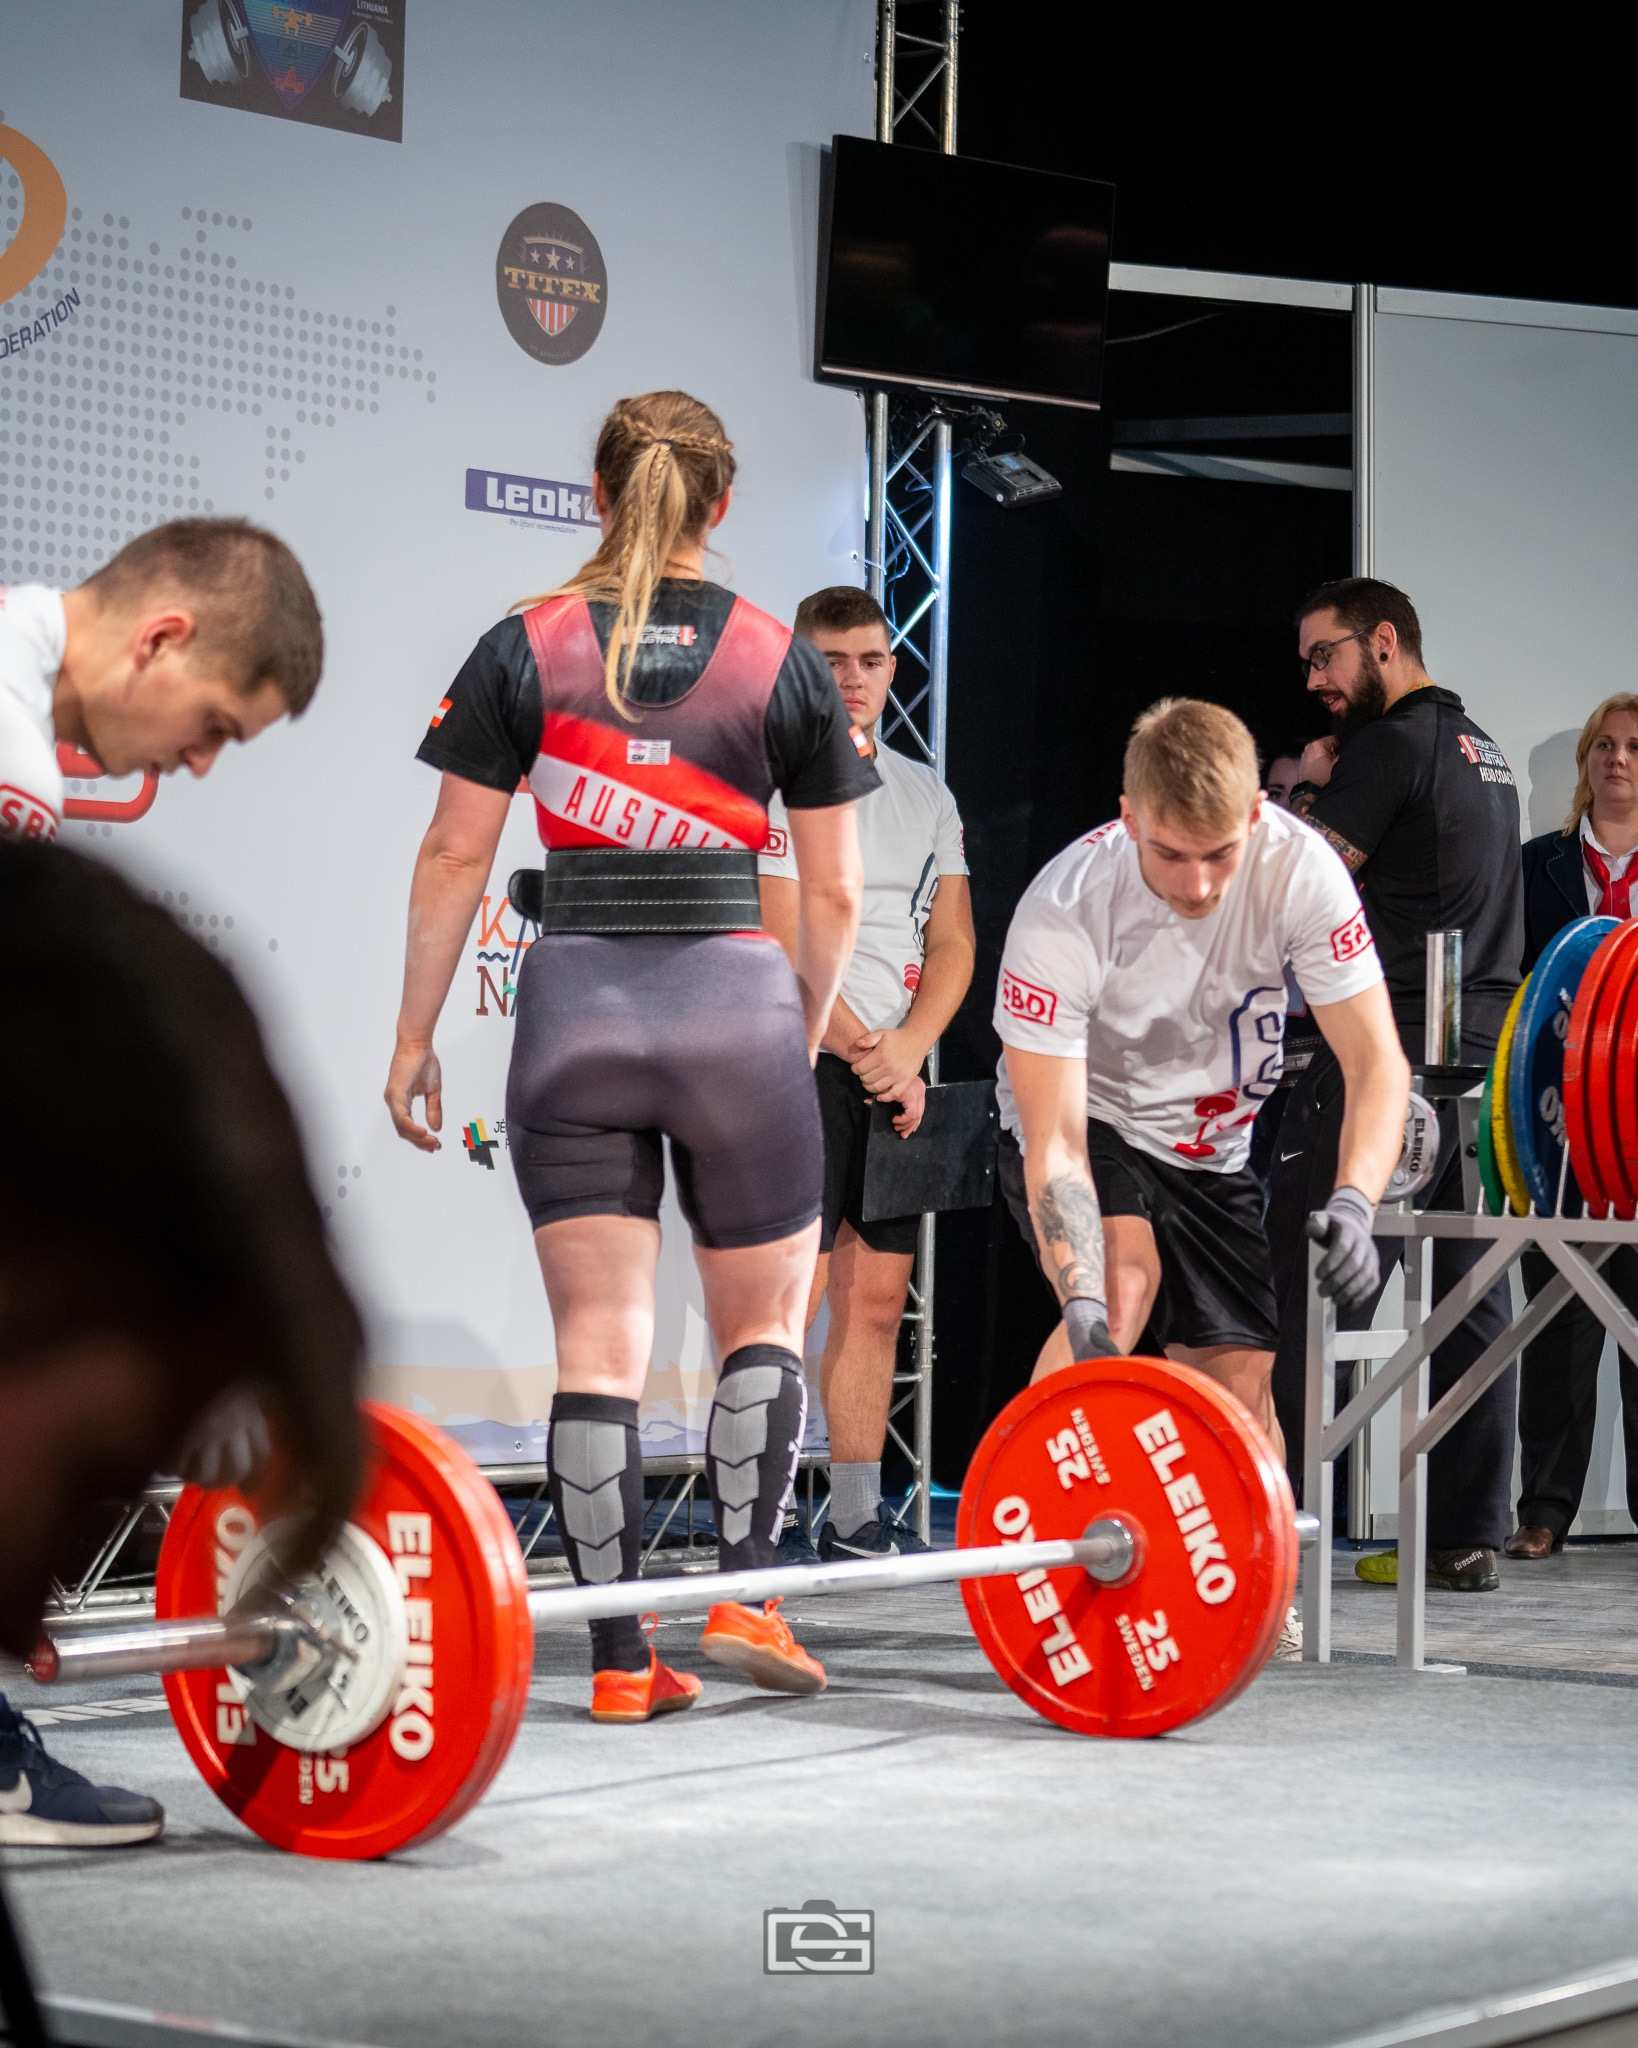 The worst competion of my life. - European Powerlifting Championships 2018, Lithuania